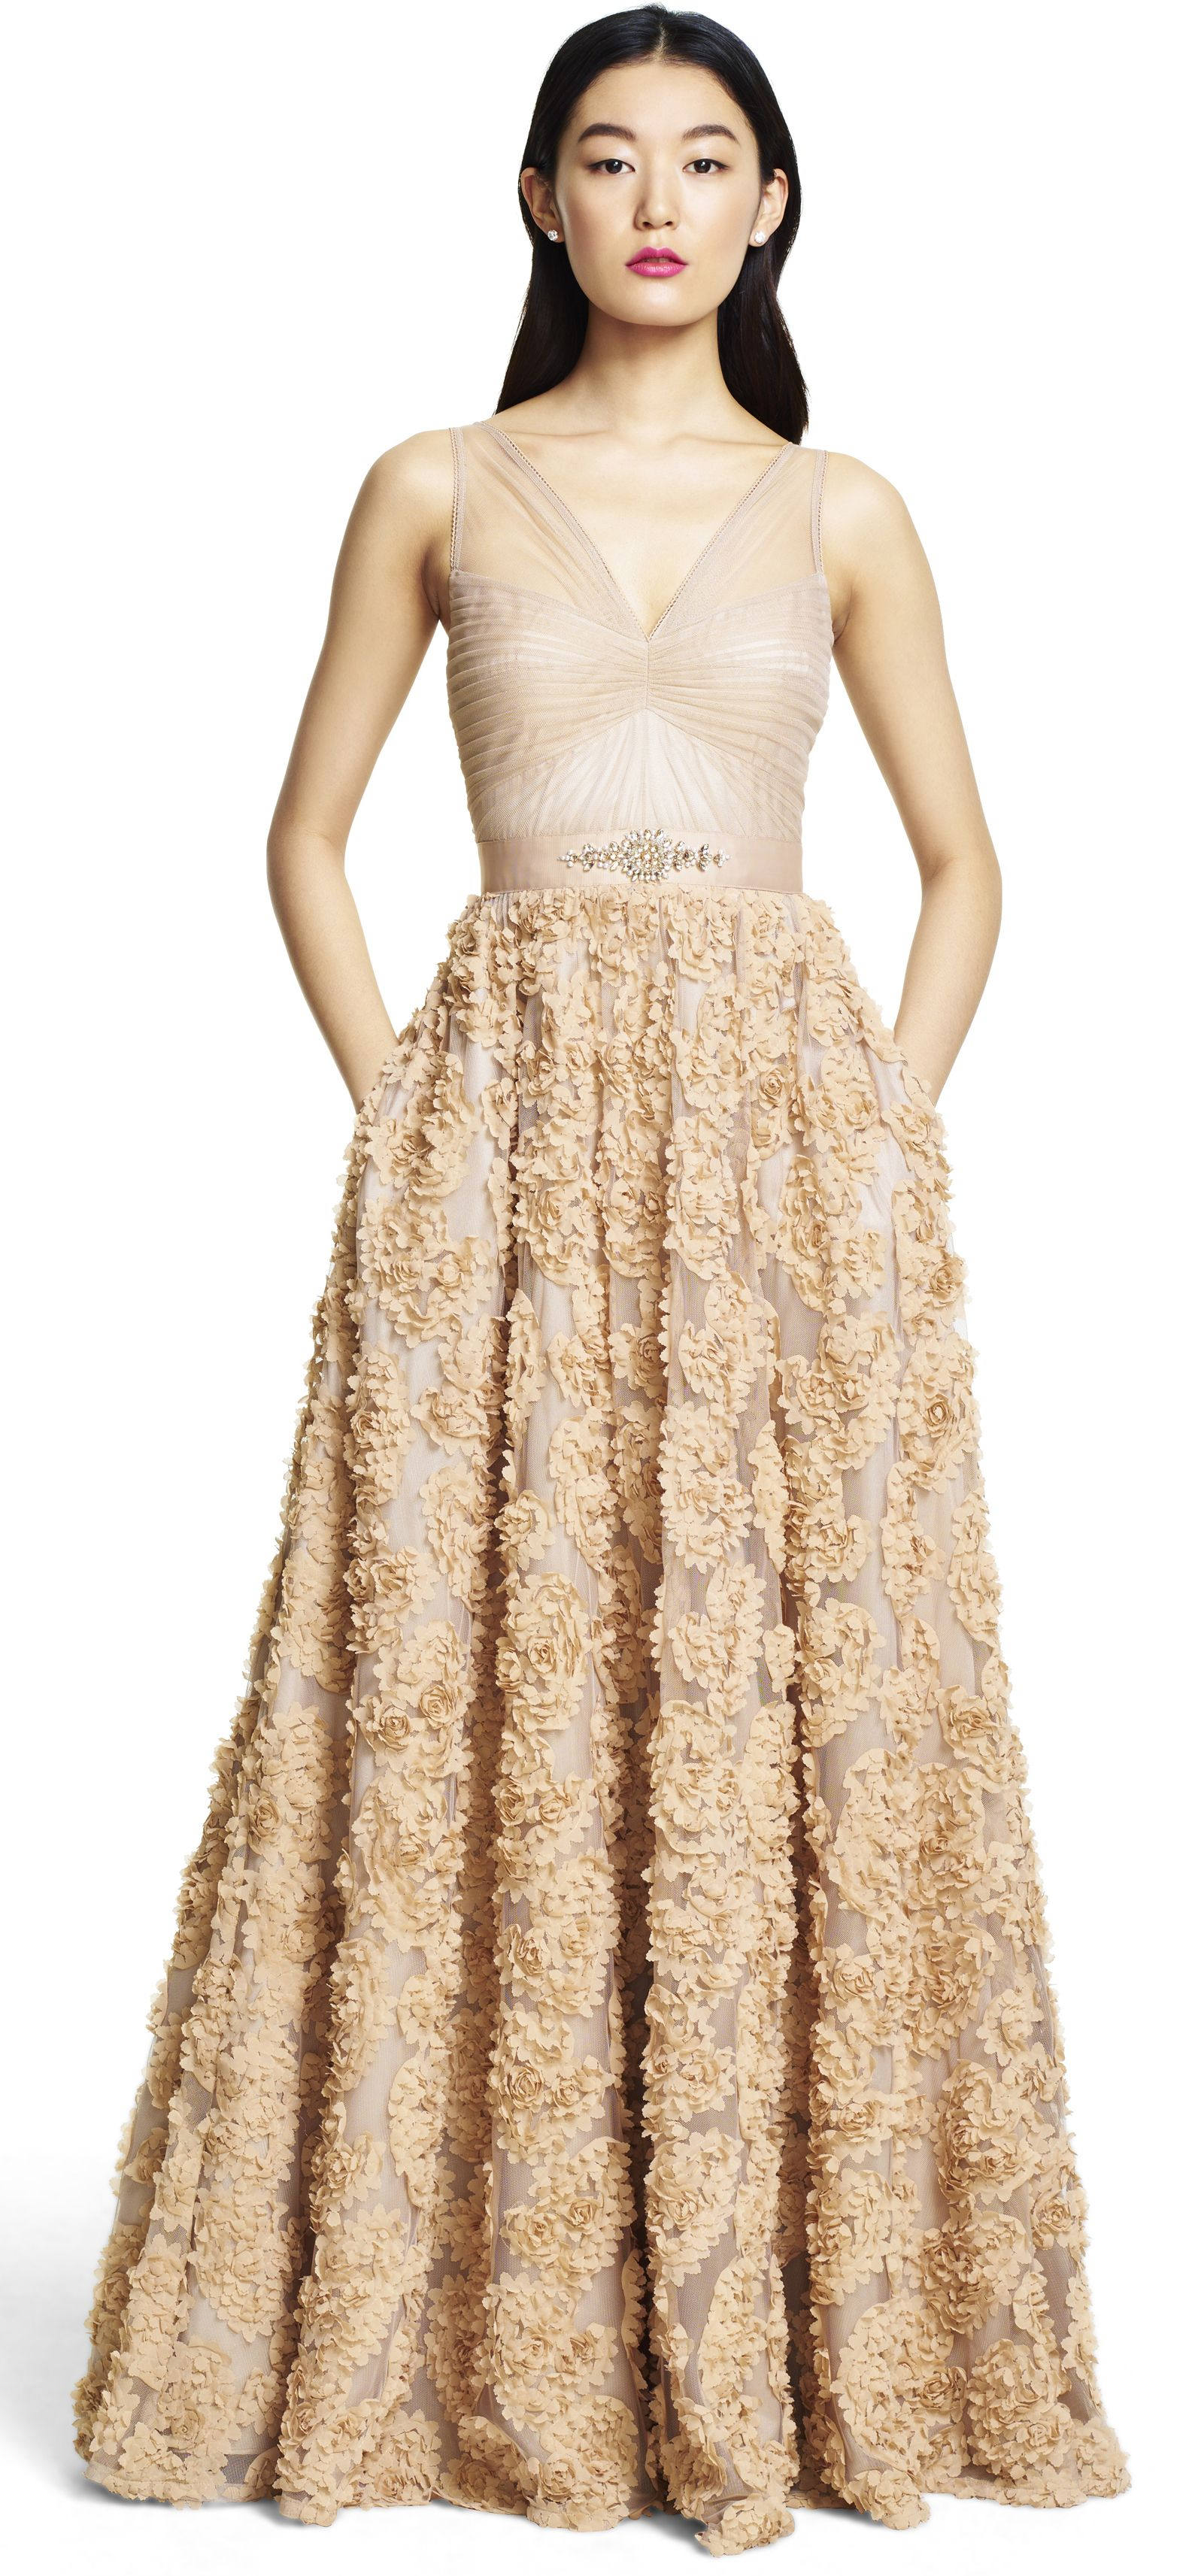 Elegant and ethereal tulle is used throughout the bodice of this